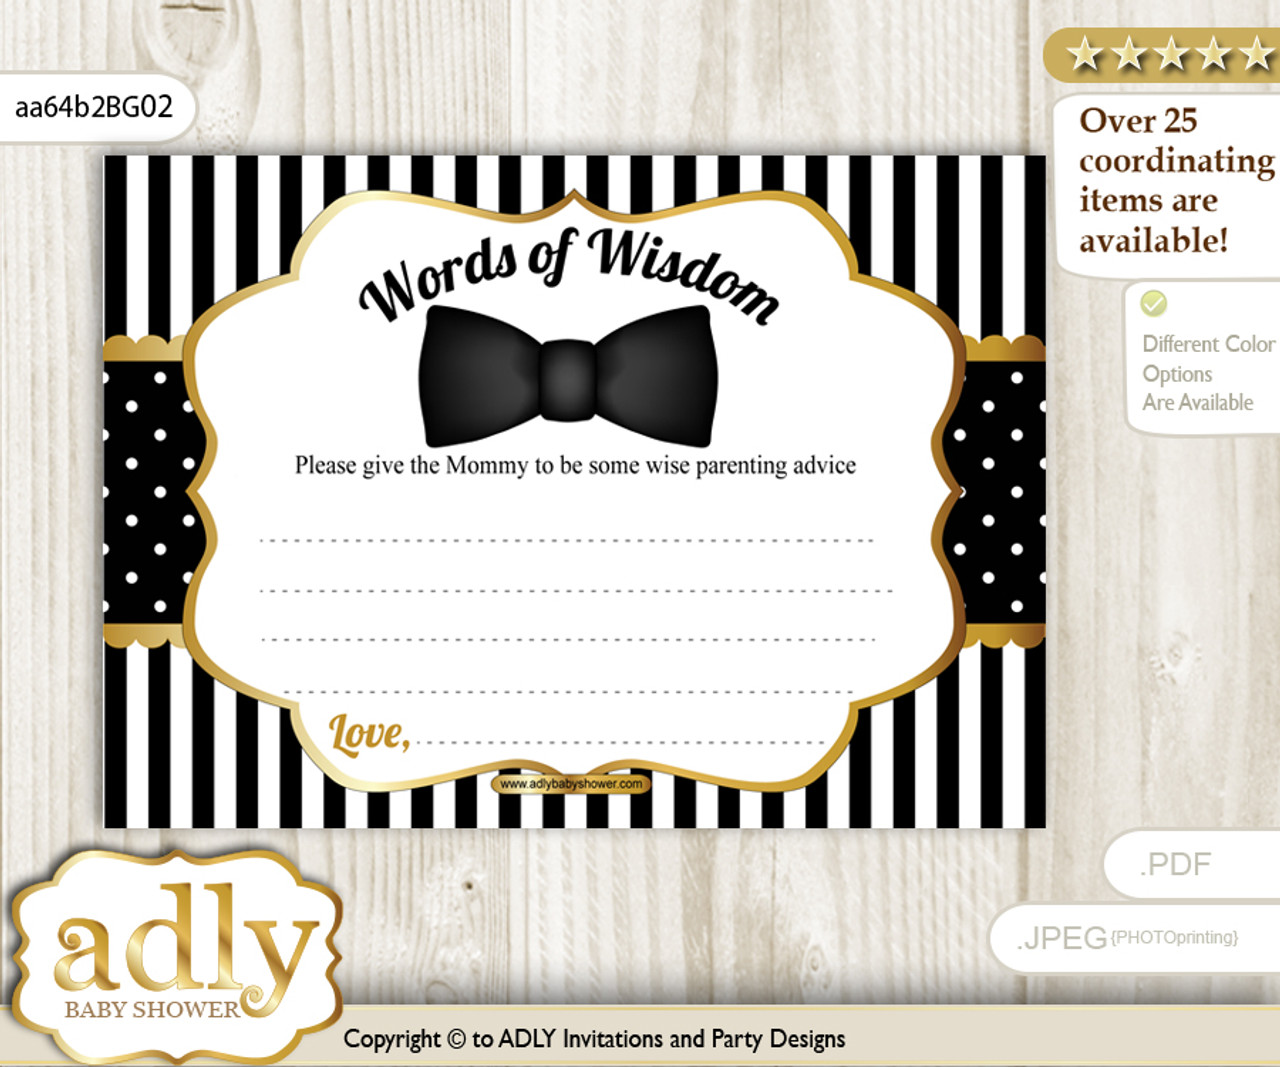 photo regarding Bow Tie Printable known as Black Gold Boy Bow Tie Words and phrases of Knowledge or an Suggestions Printable Card for Youngster Shower, Stripes